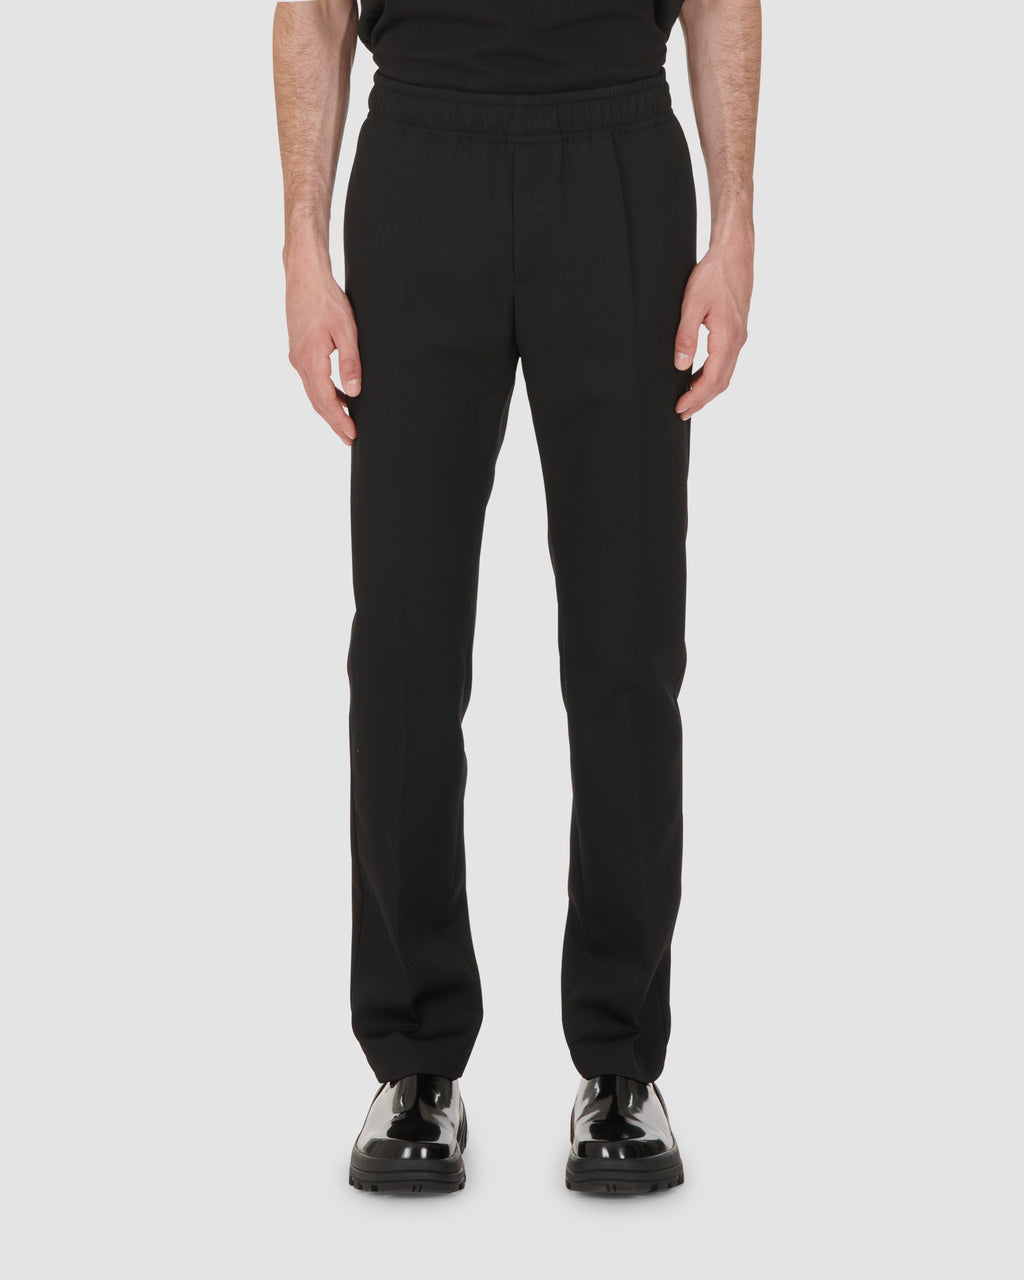 1017 ALYX 9SM | ELASTIC WAIST SUIT PANT | Pants | BLACK, Google Shopping, Man, MEN, Pants, S20, SS20, Trousers